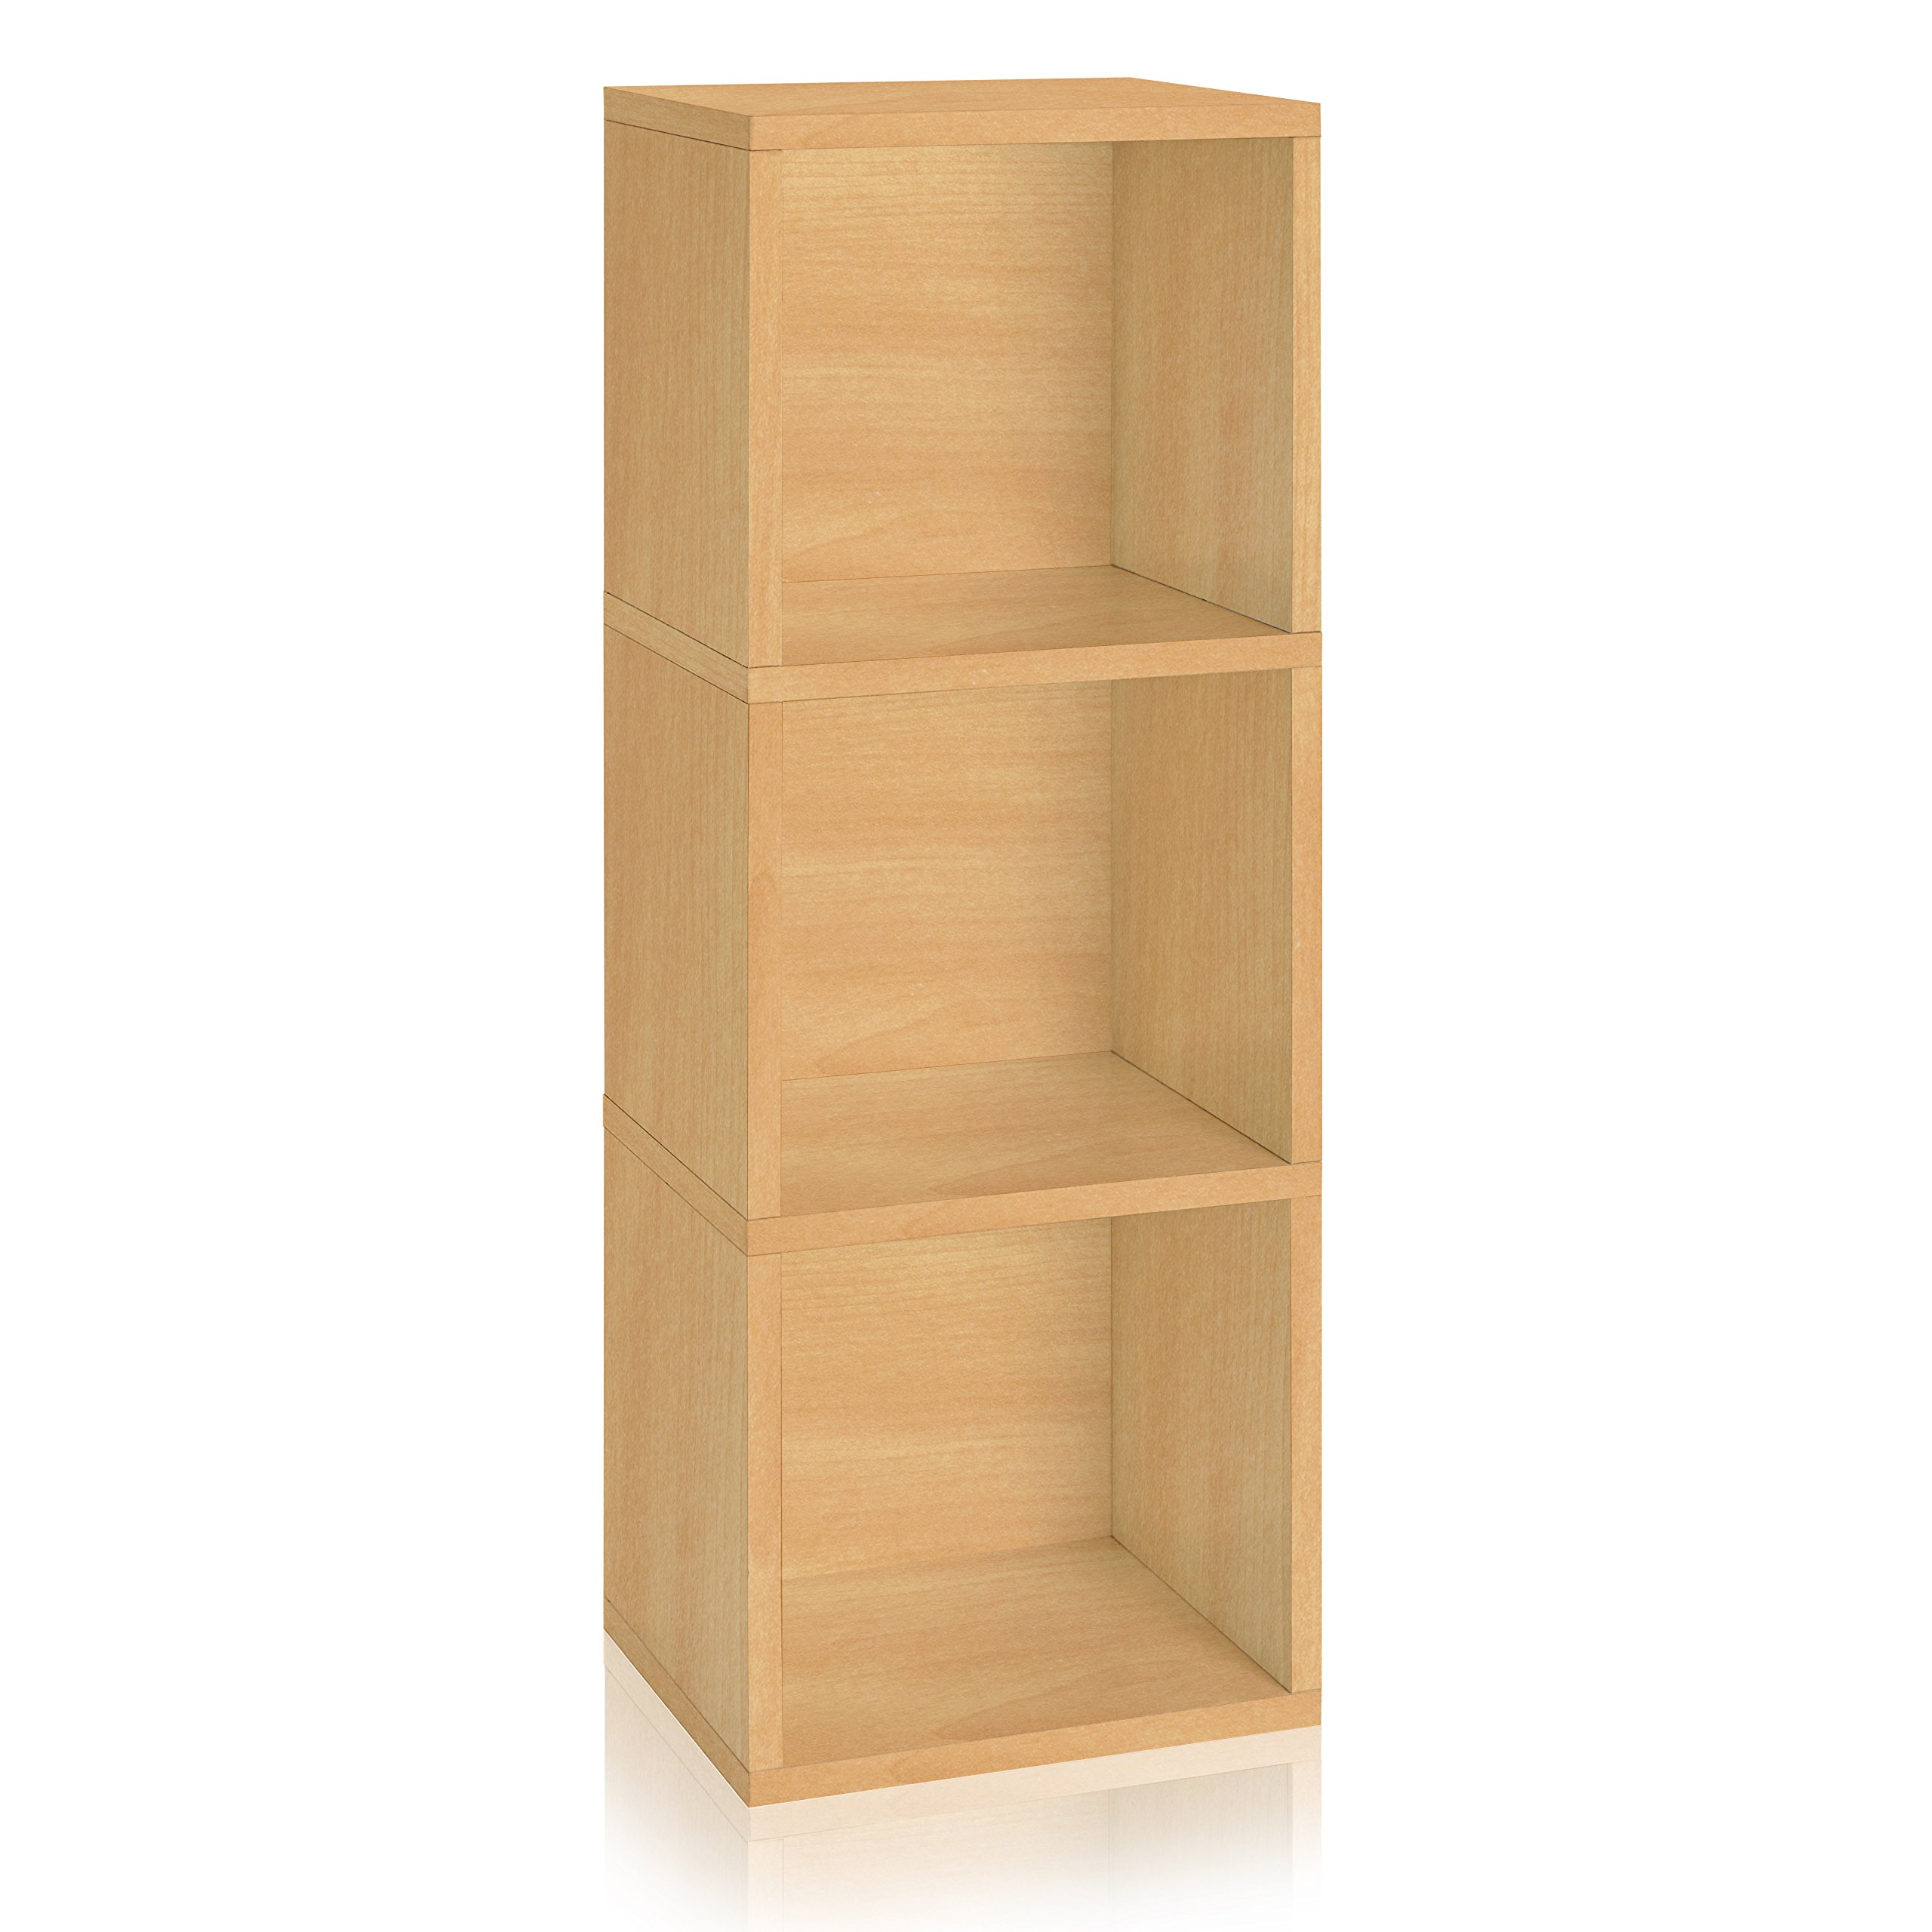 Way Basics Eco Friendly Wynwood 3-Cube Bookcase Organizer and Storage Unit, Natural (made from sustainable non toxic zBoard paperboard)